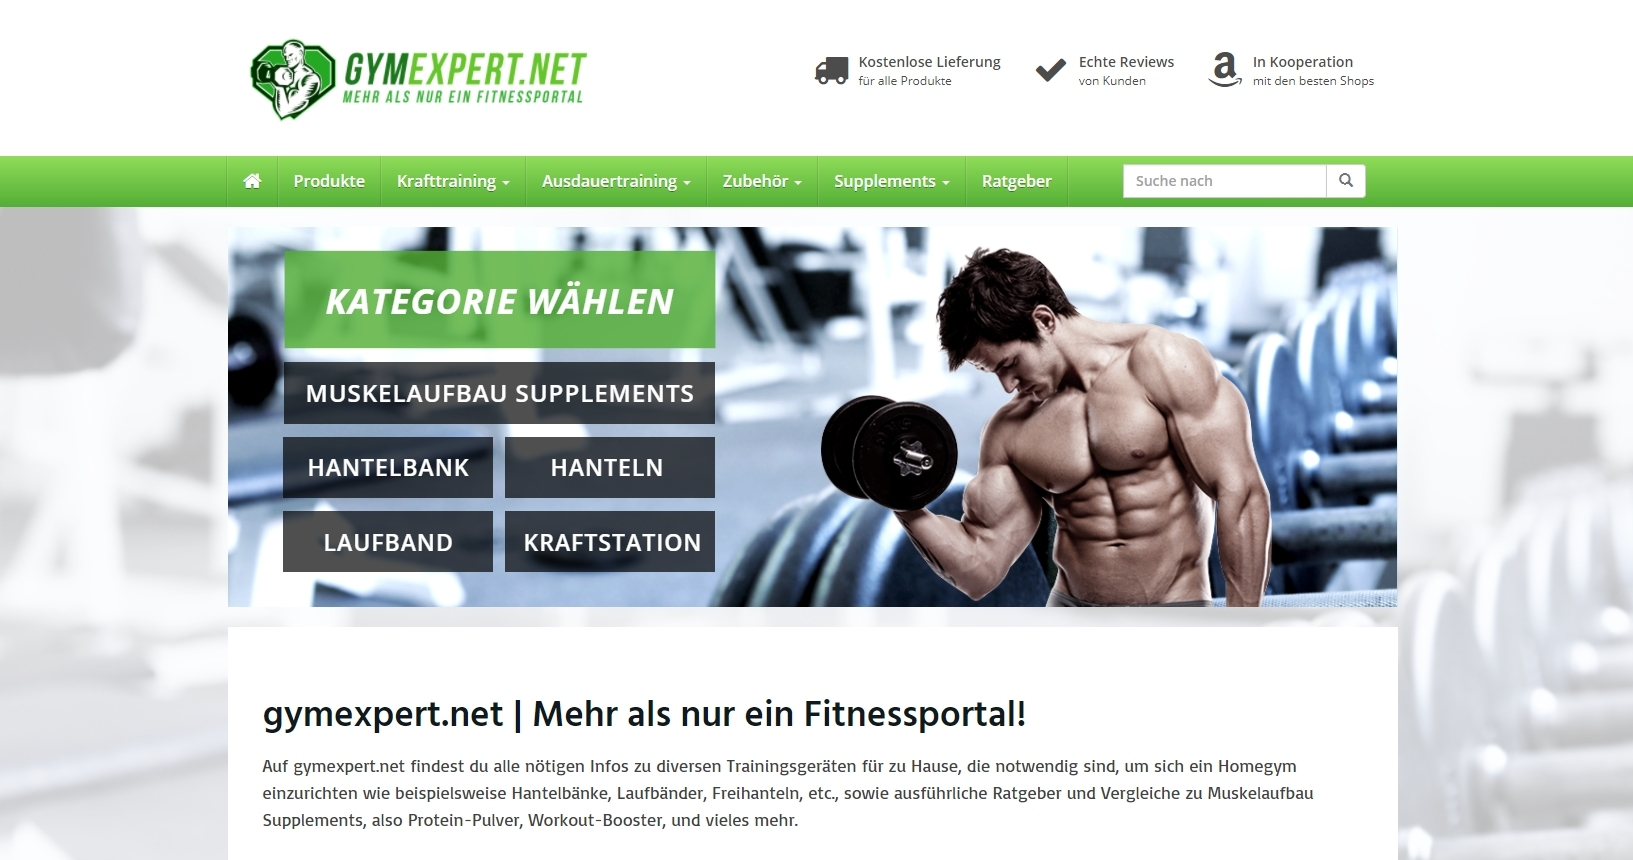 New Website: gymexpert.net